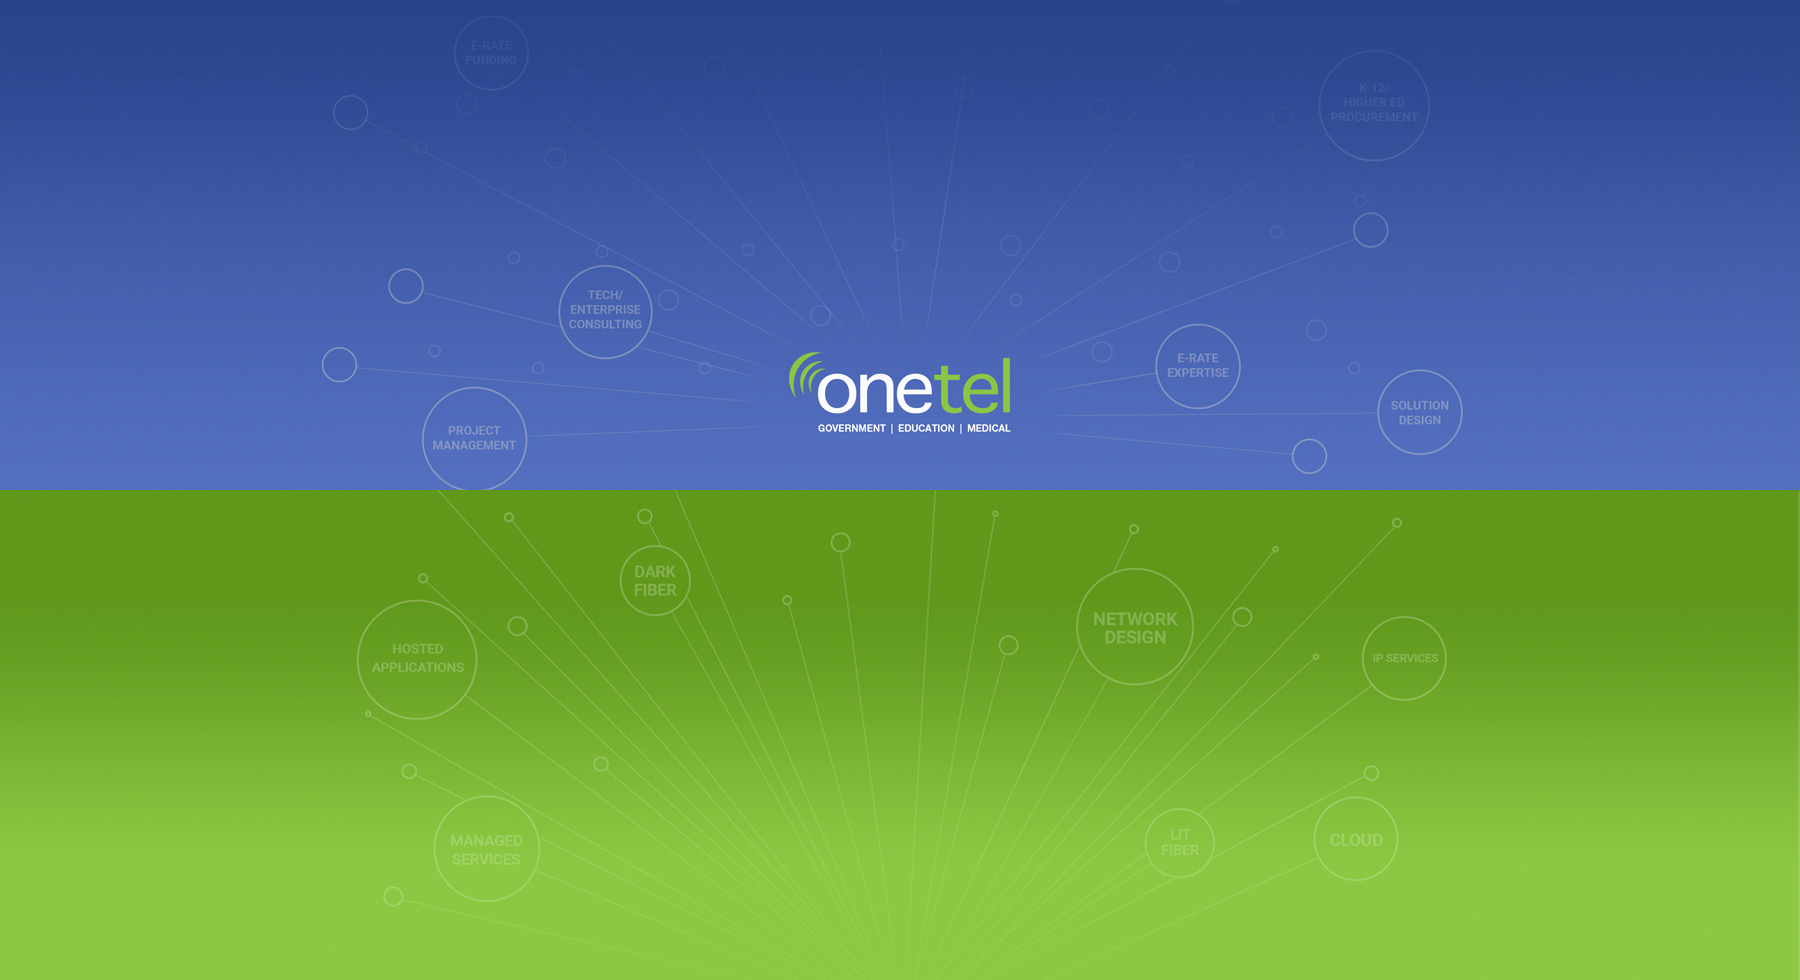 OneTel services promotional graphic